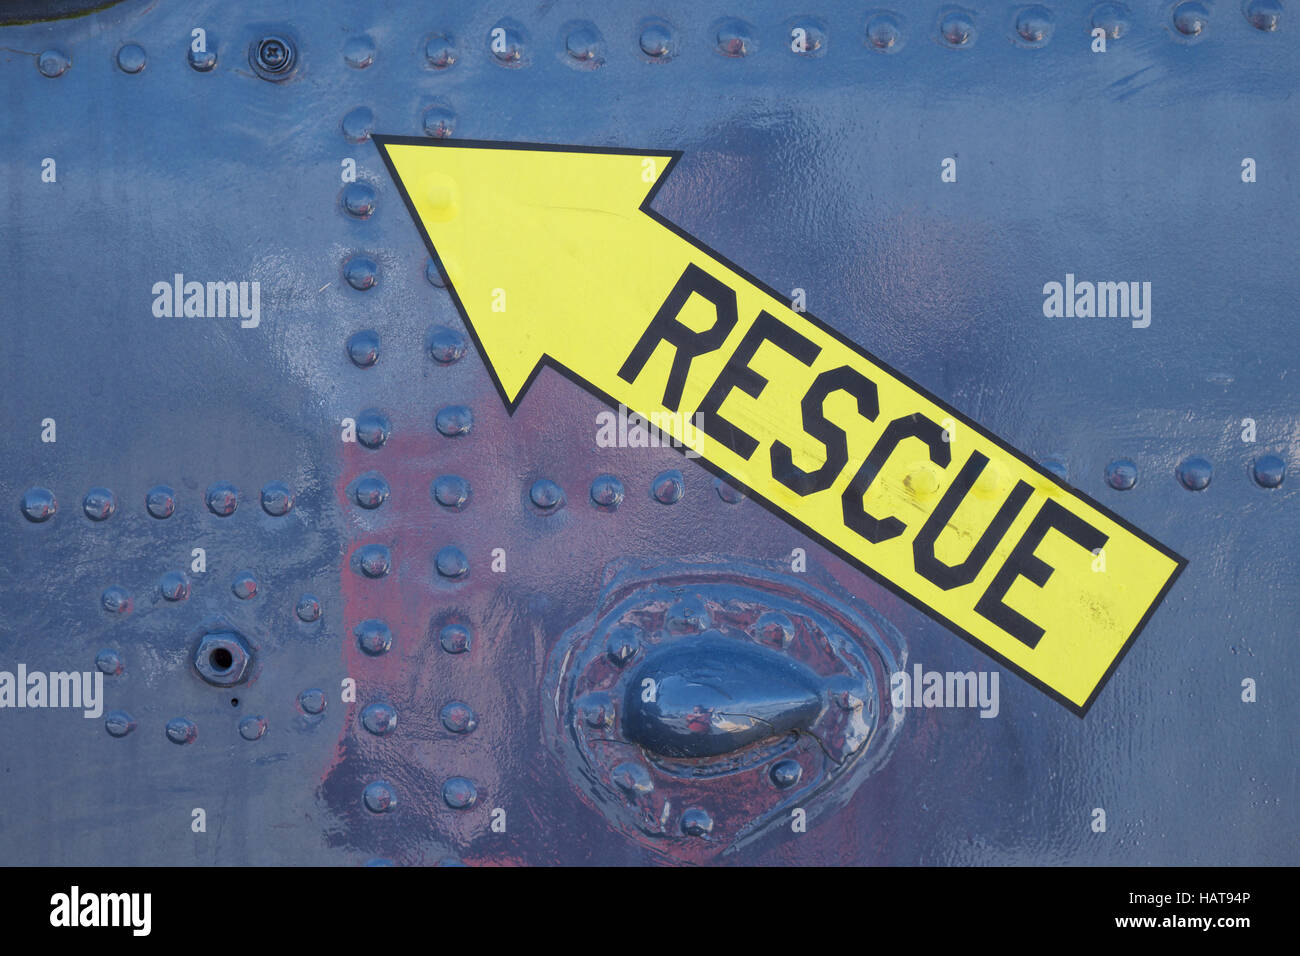 Rescue emergency marker on military aircraft at Patriots Point in Charleston, SC - Stock Image